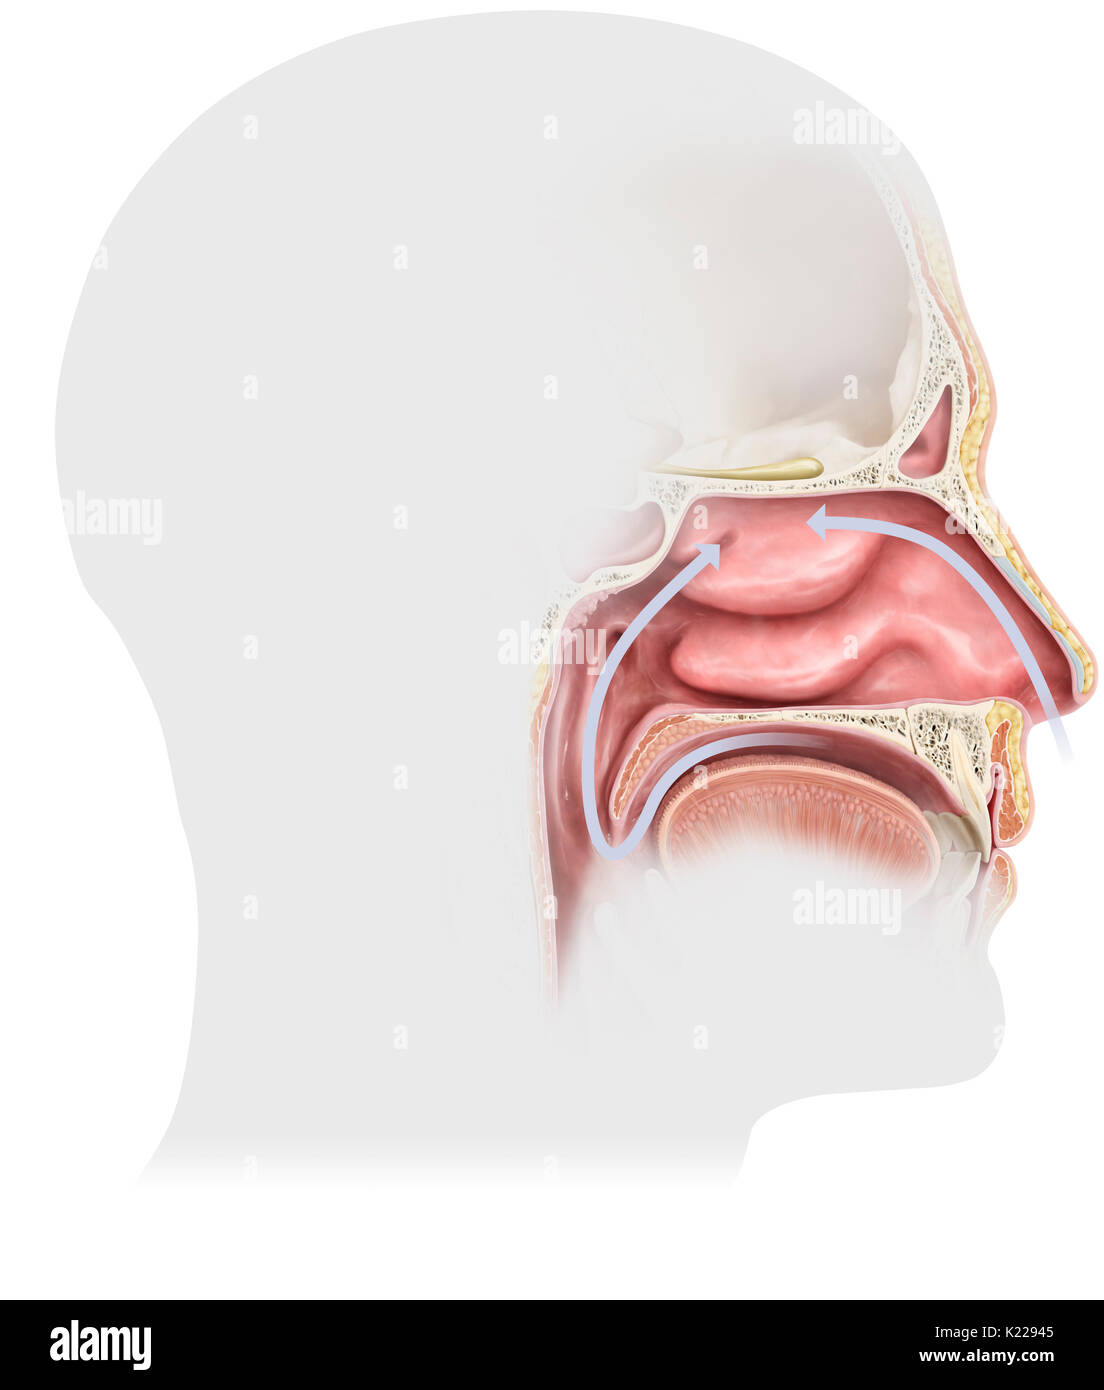 Mucus Stock Photos & Mucus Stock Images - Alamy